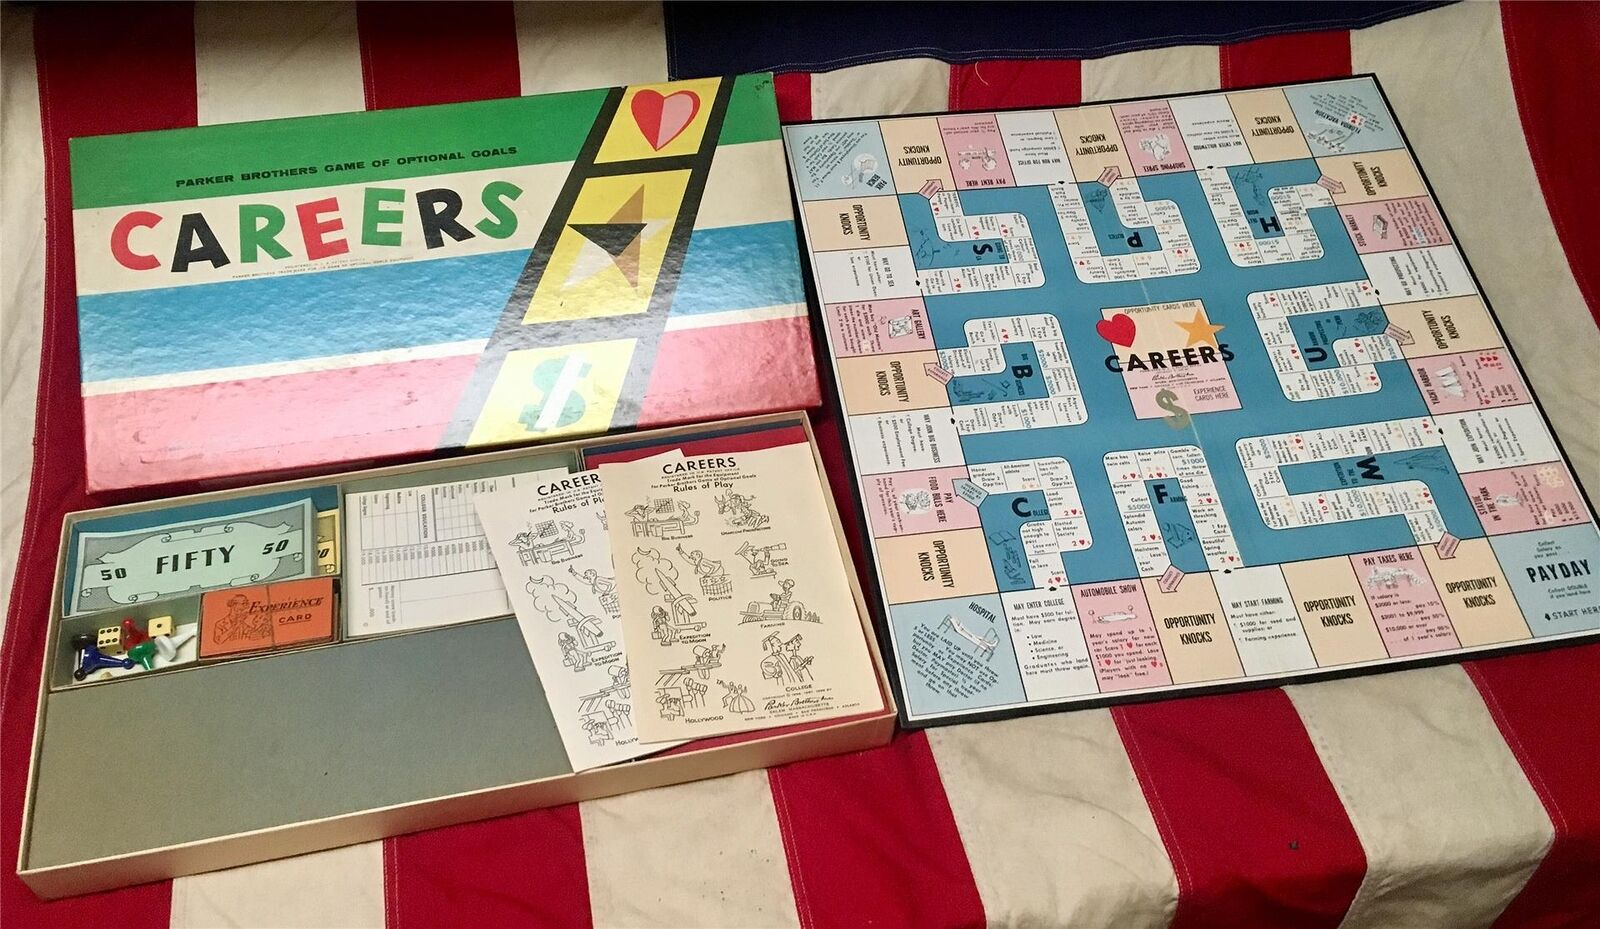 Vintage 1955 Careers Board Game Parker Brossohers Game of Optional Goals Complete